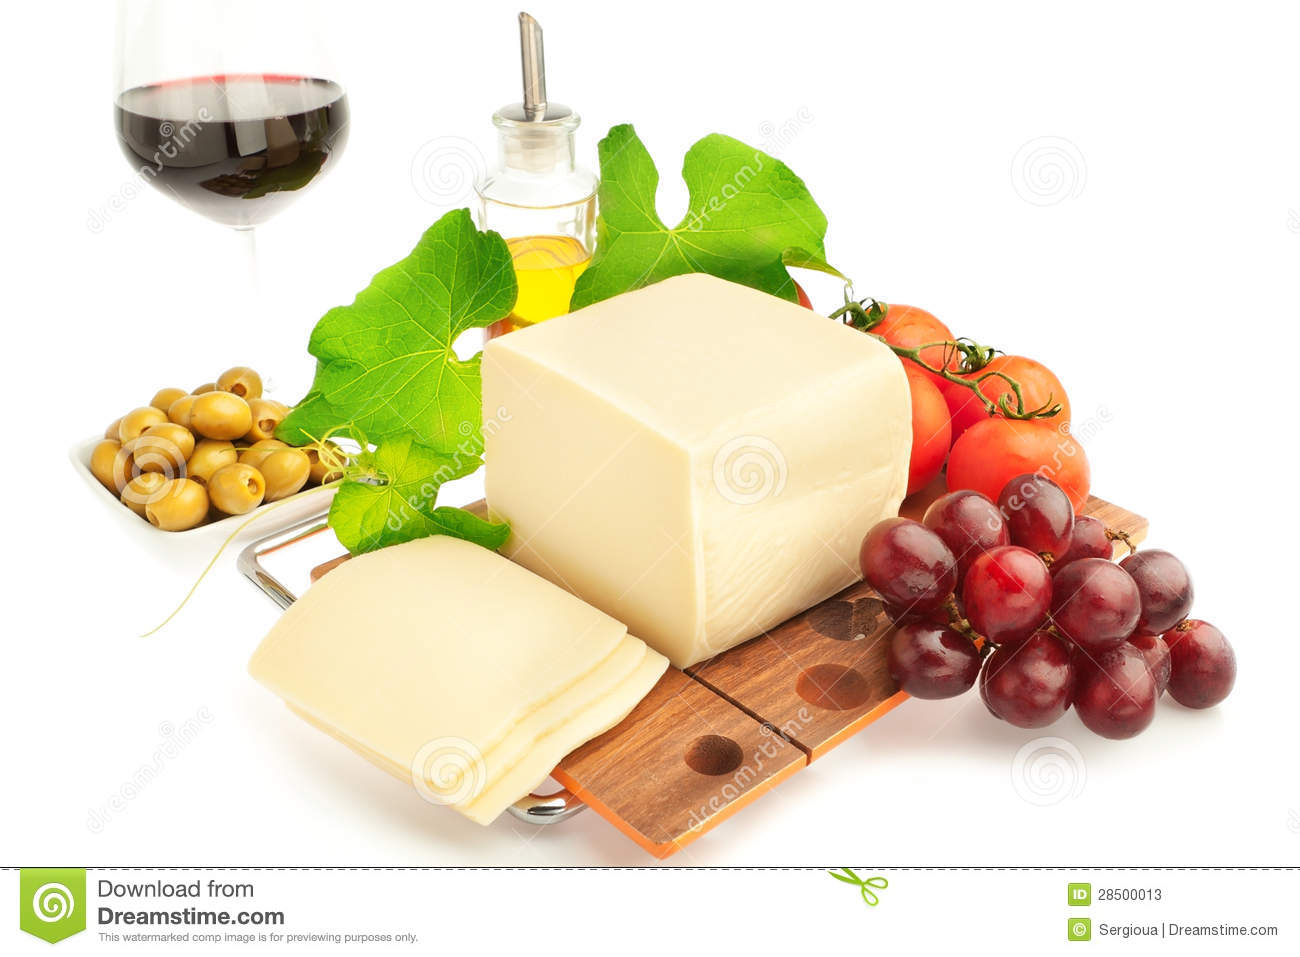 breakfast-cheese-fruit-vegetables-28500013.jpg